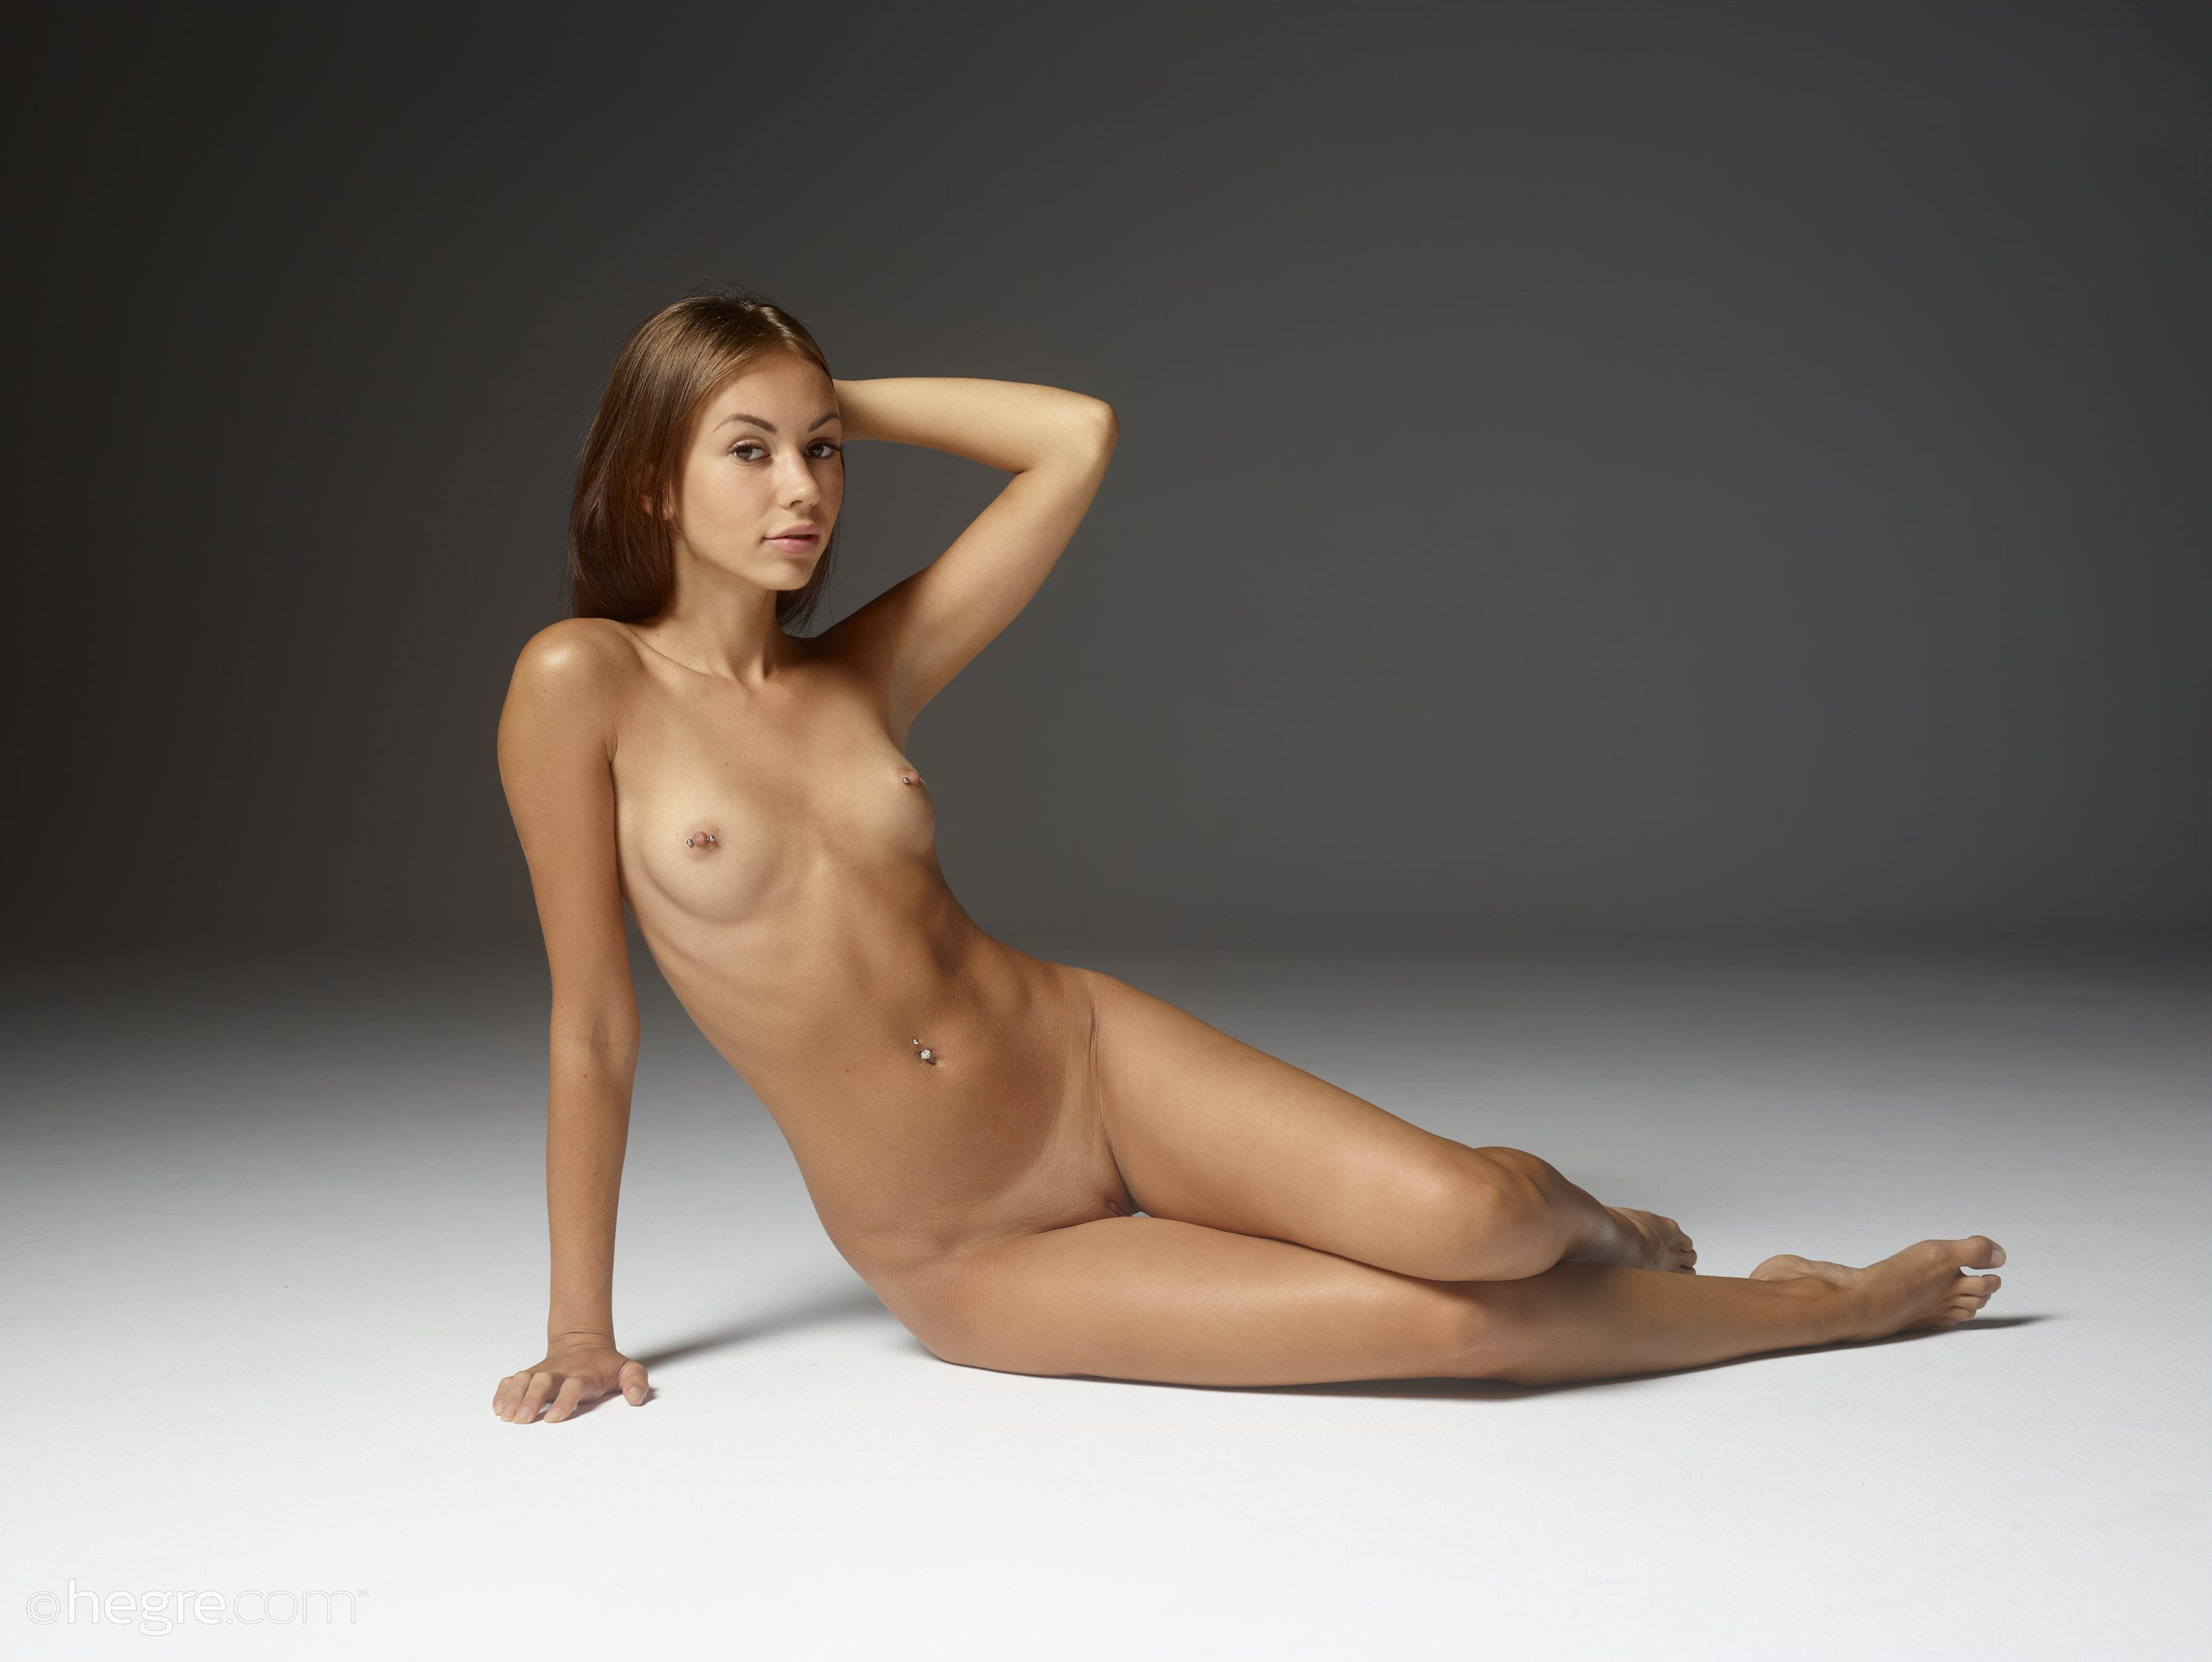 Free woman nude poses for artists